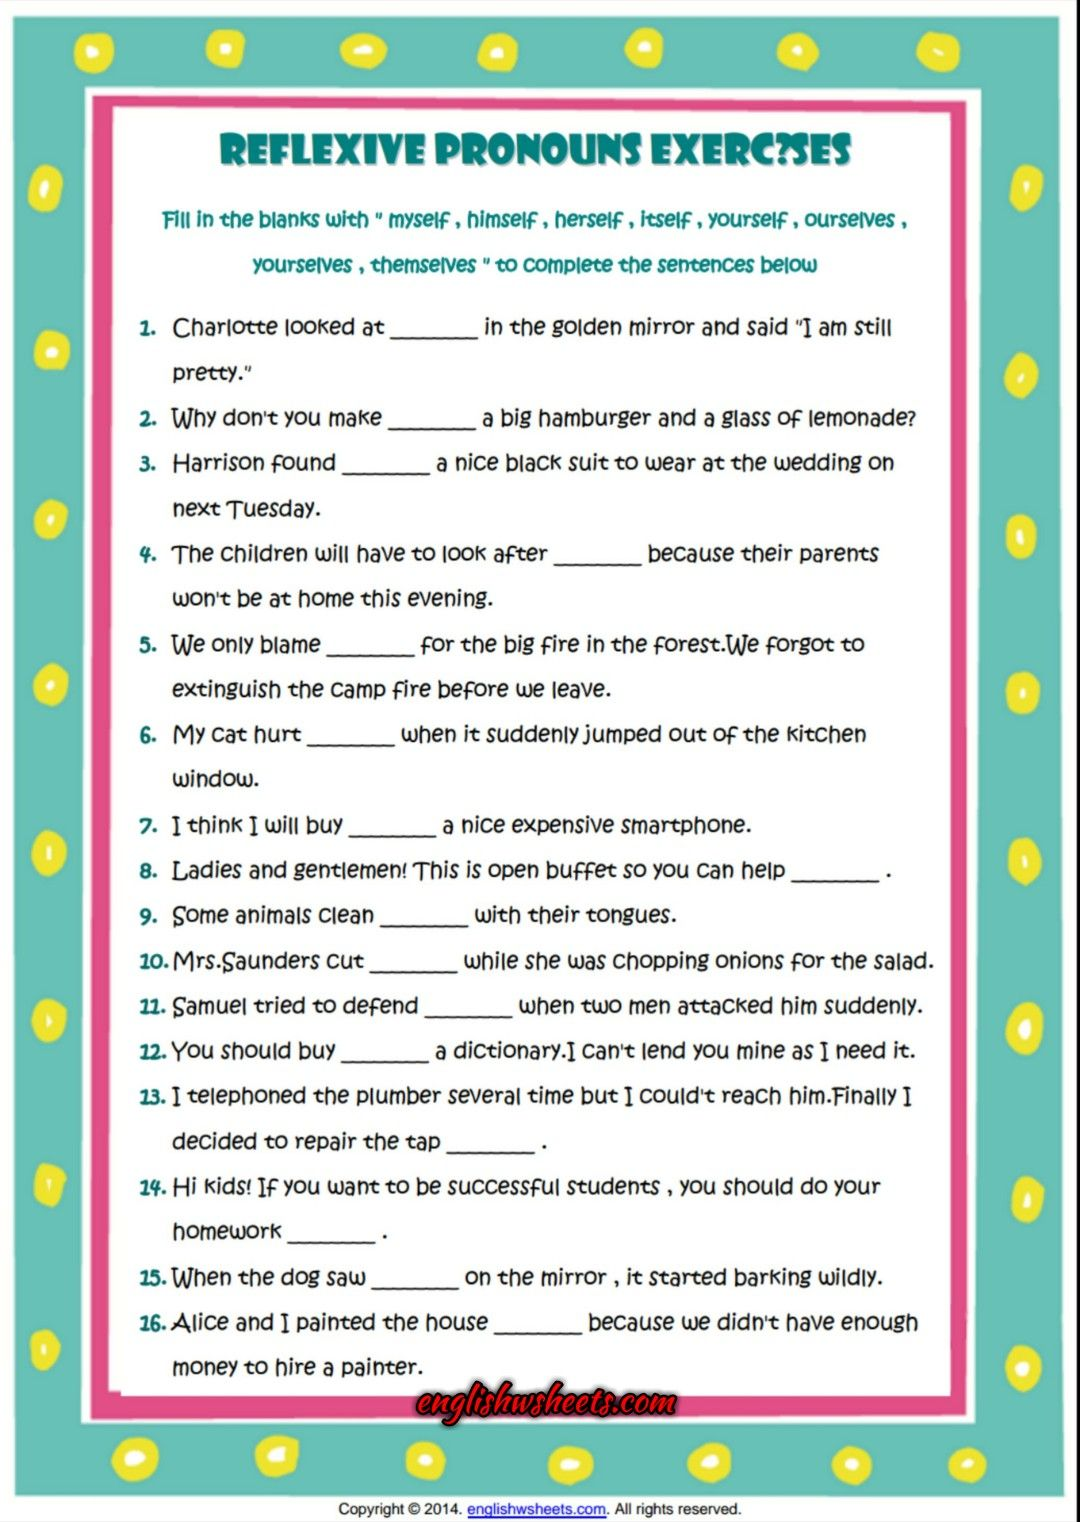 Reflexive Pronouns ESL Grammar Exercise Worksheet   Reflexive pronoun [ 1522 x 1080 Pixel ]